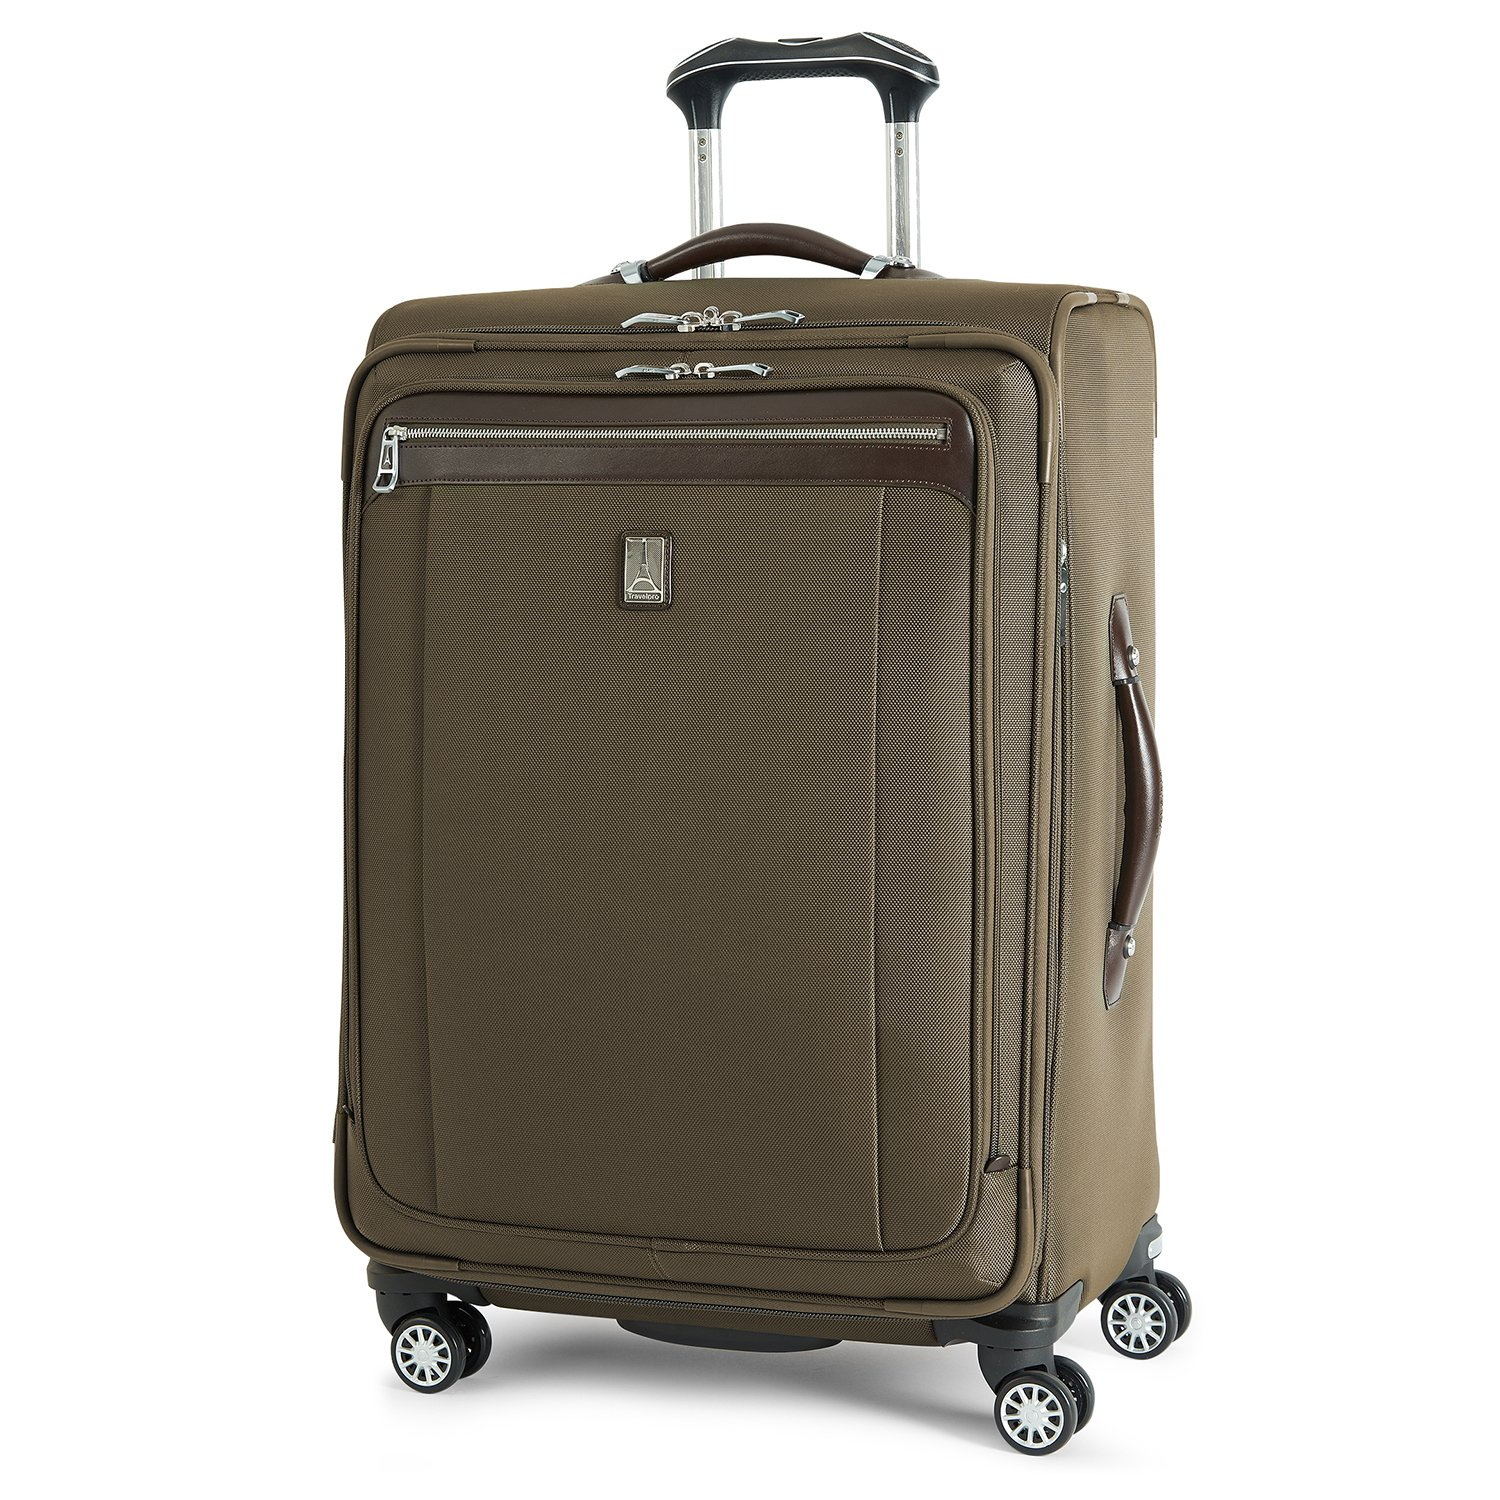 Travelpro Platinum Magna 2 Expandable Spinner Suiter Suitcase, 25-in., Olive Travelpro International Inc. 409156506